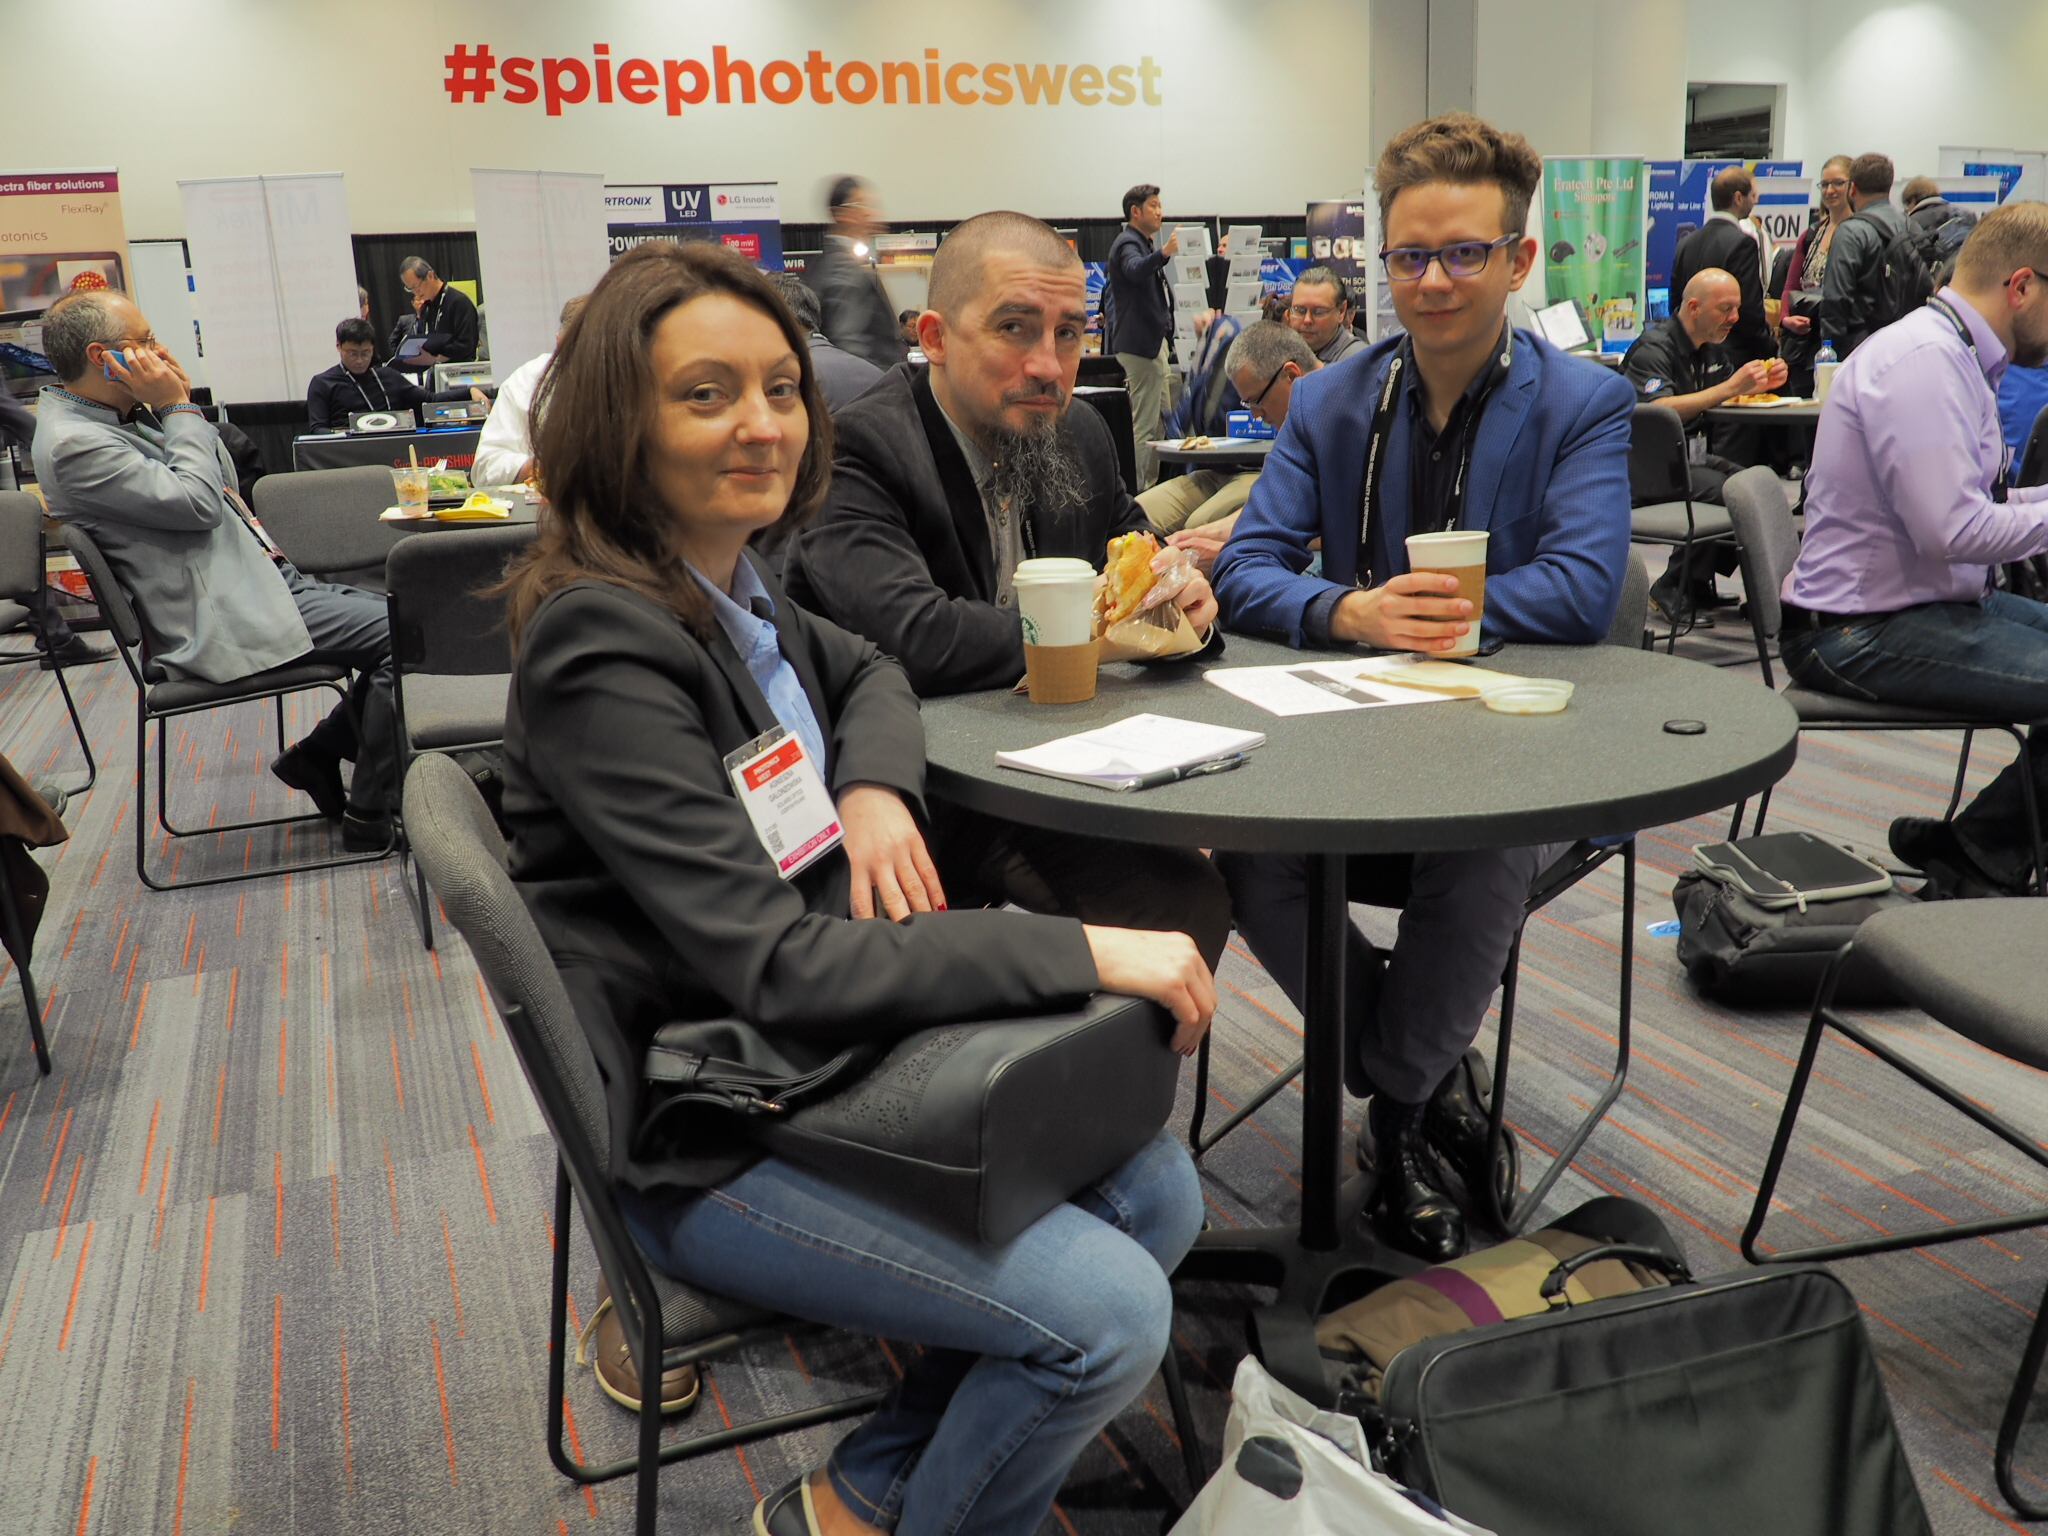 Solaris Optics at Photonics West